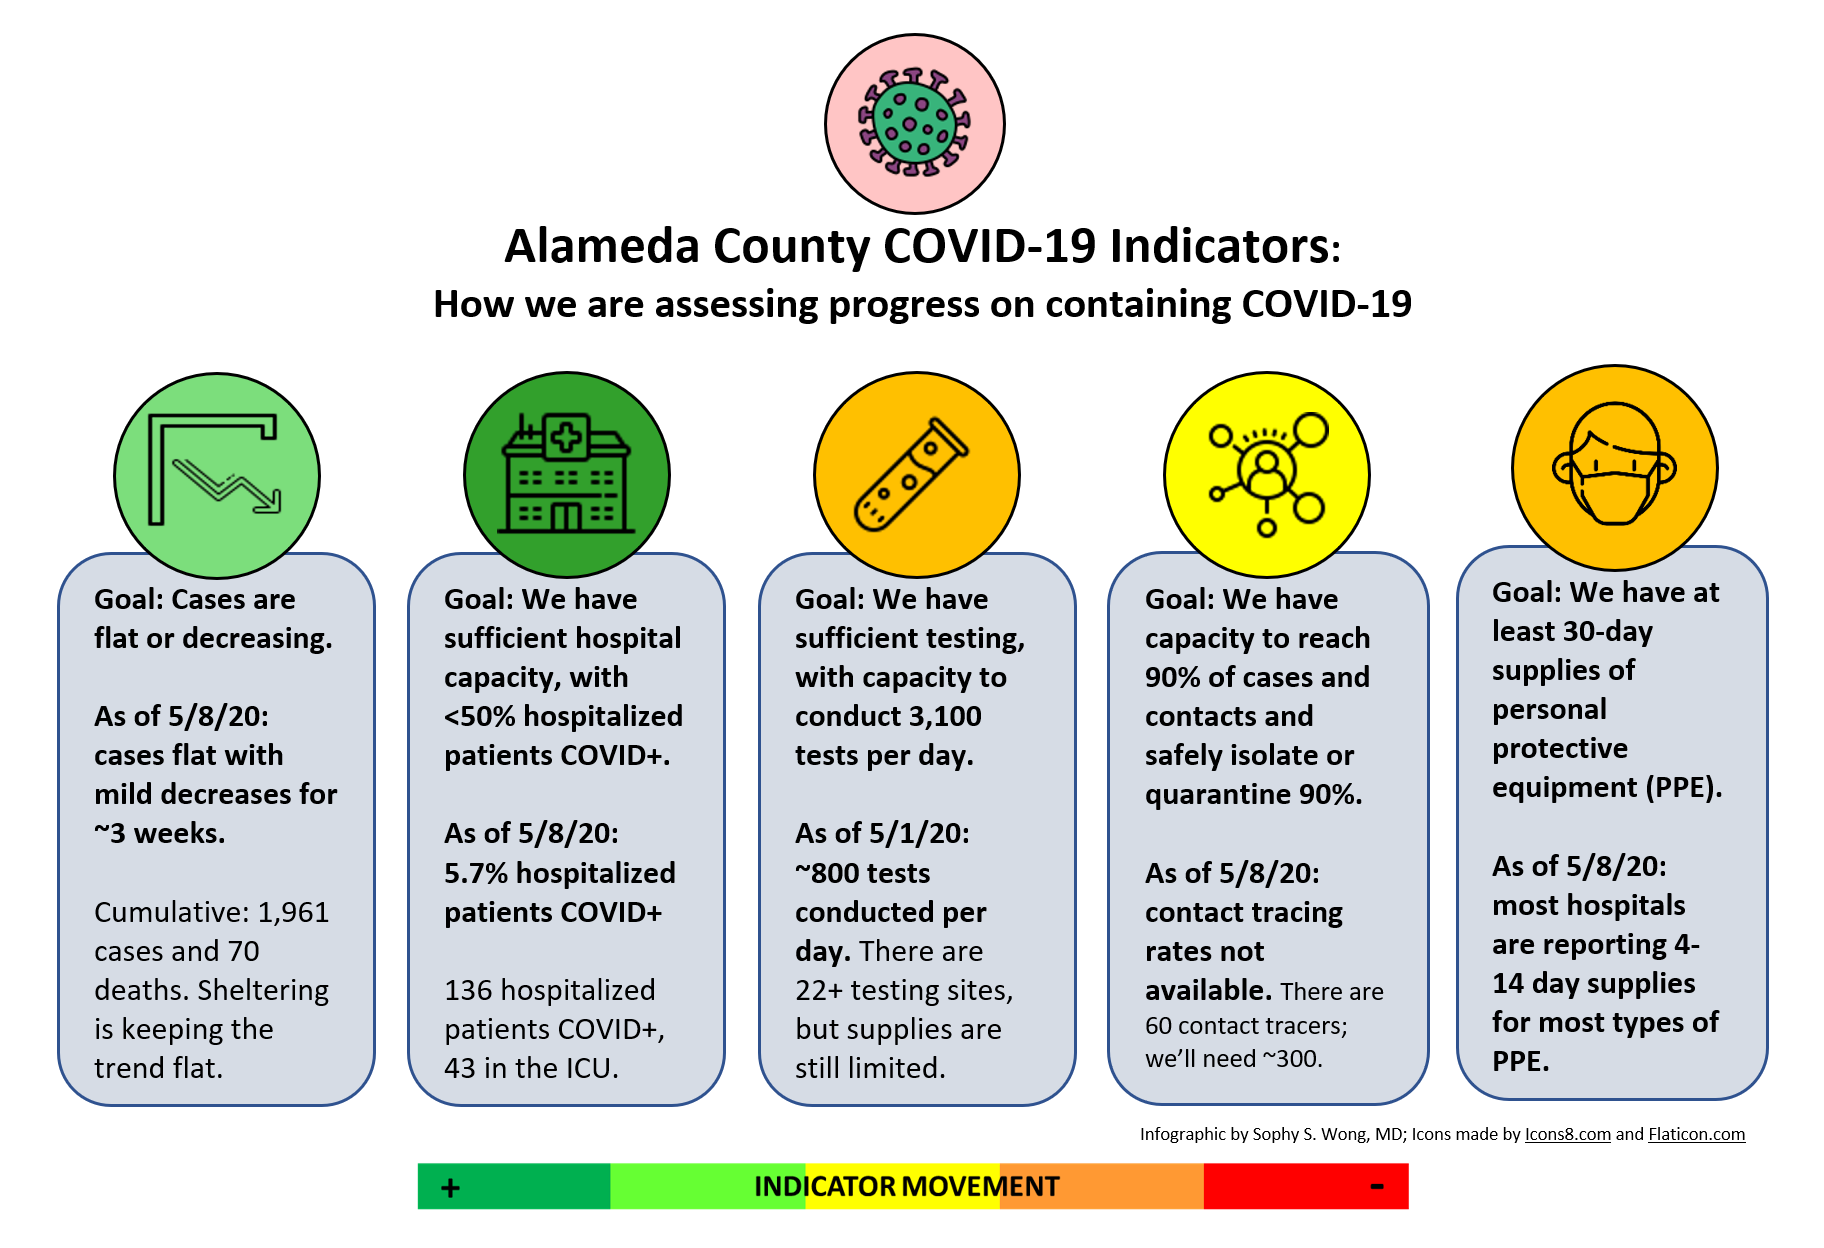 Alameda County COVID Indicators infographic 5.11.20 stoplight report